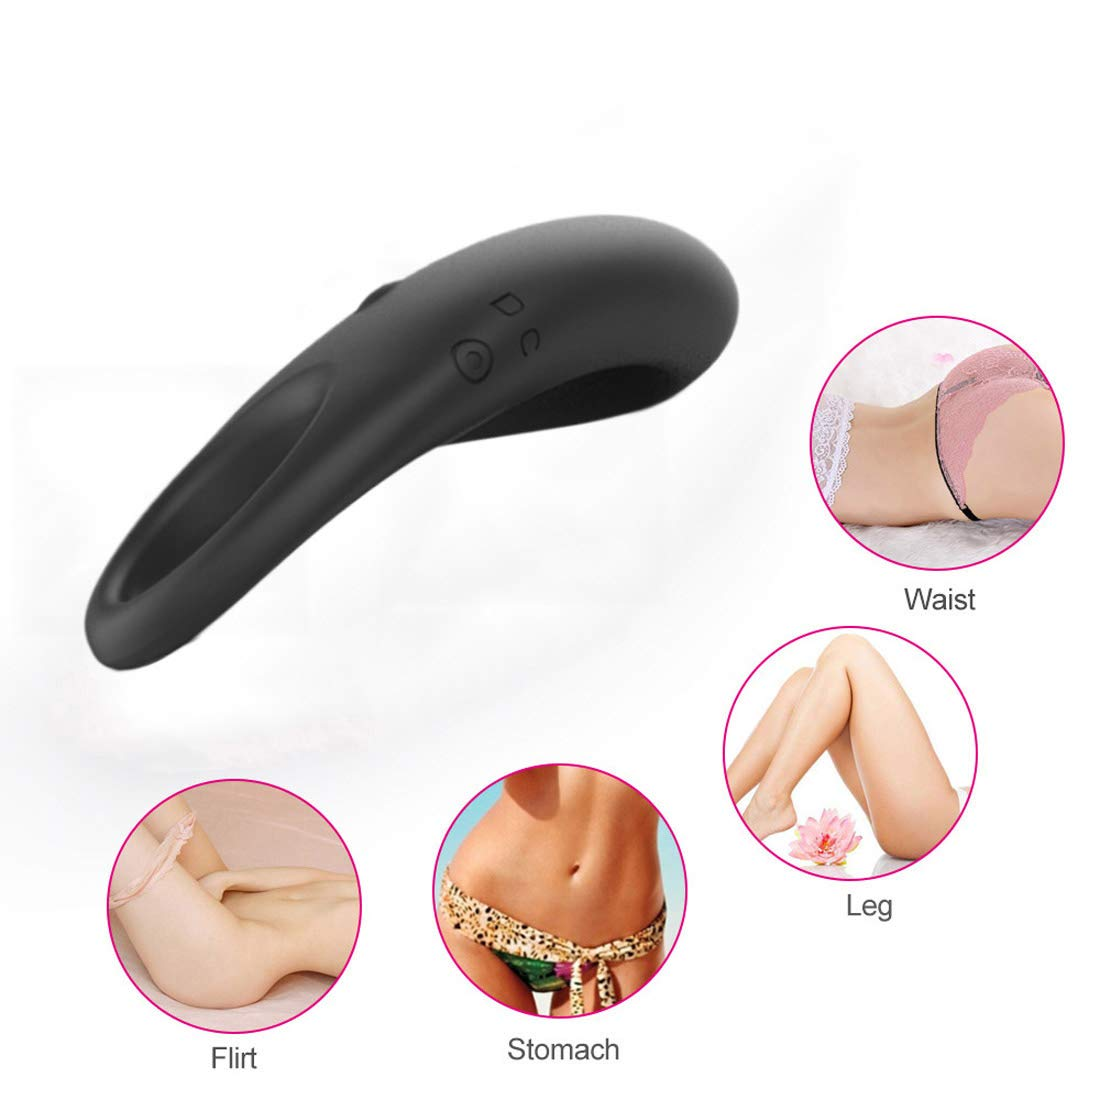 Hi-Ha 4th Generation Multifunctional Full Silicone Massager for Back with 10 Massaging Patterns Cordless for Men Waterproof USB Charge Black